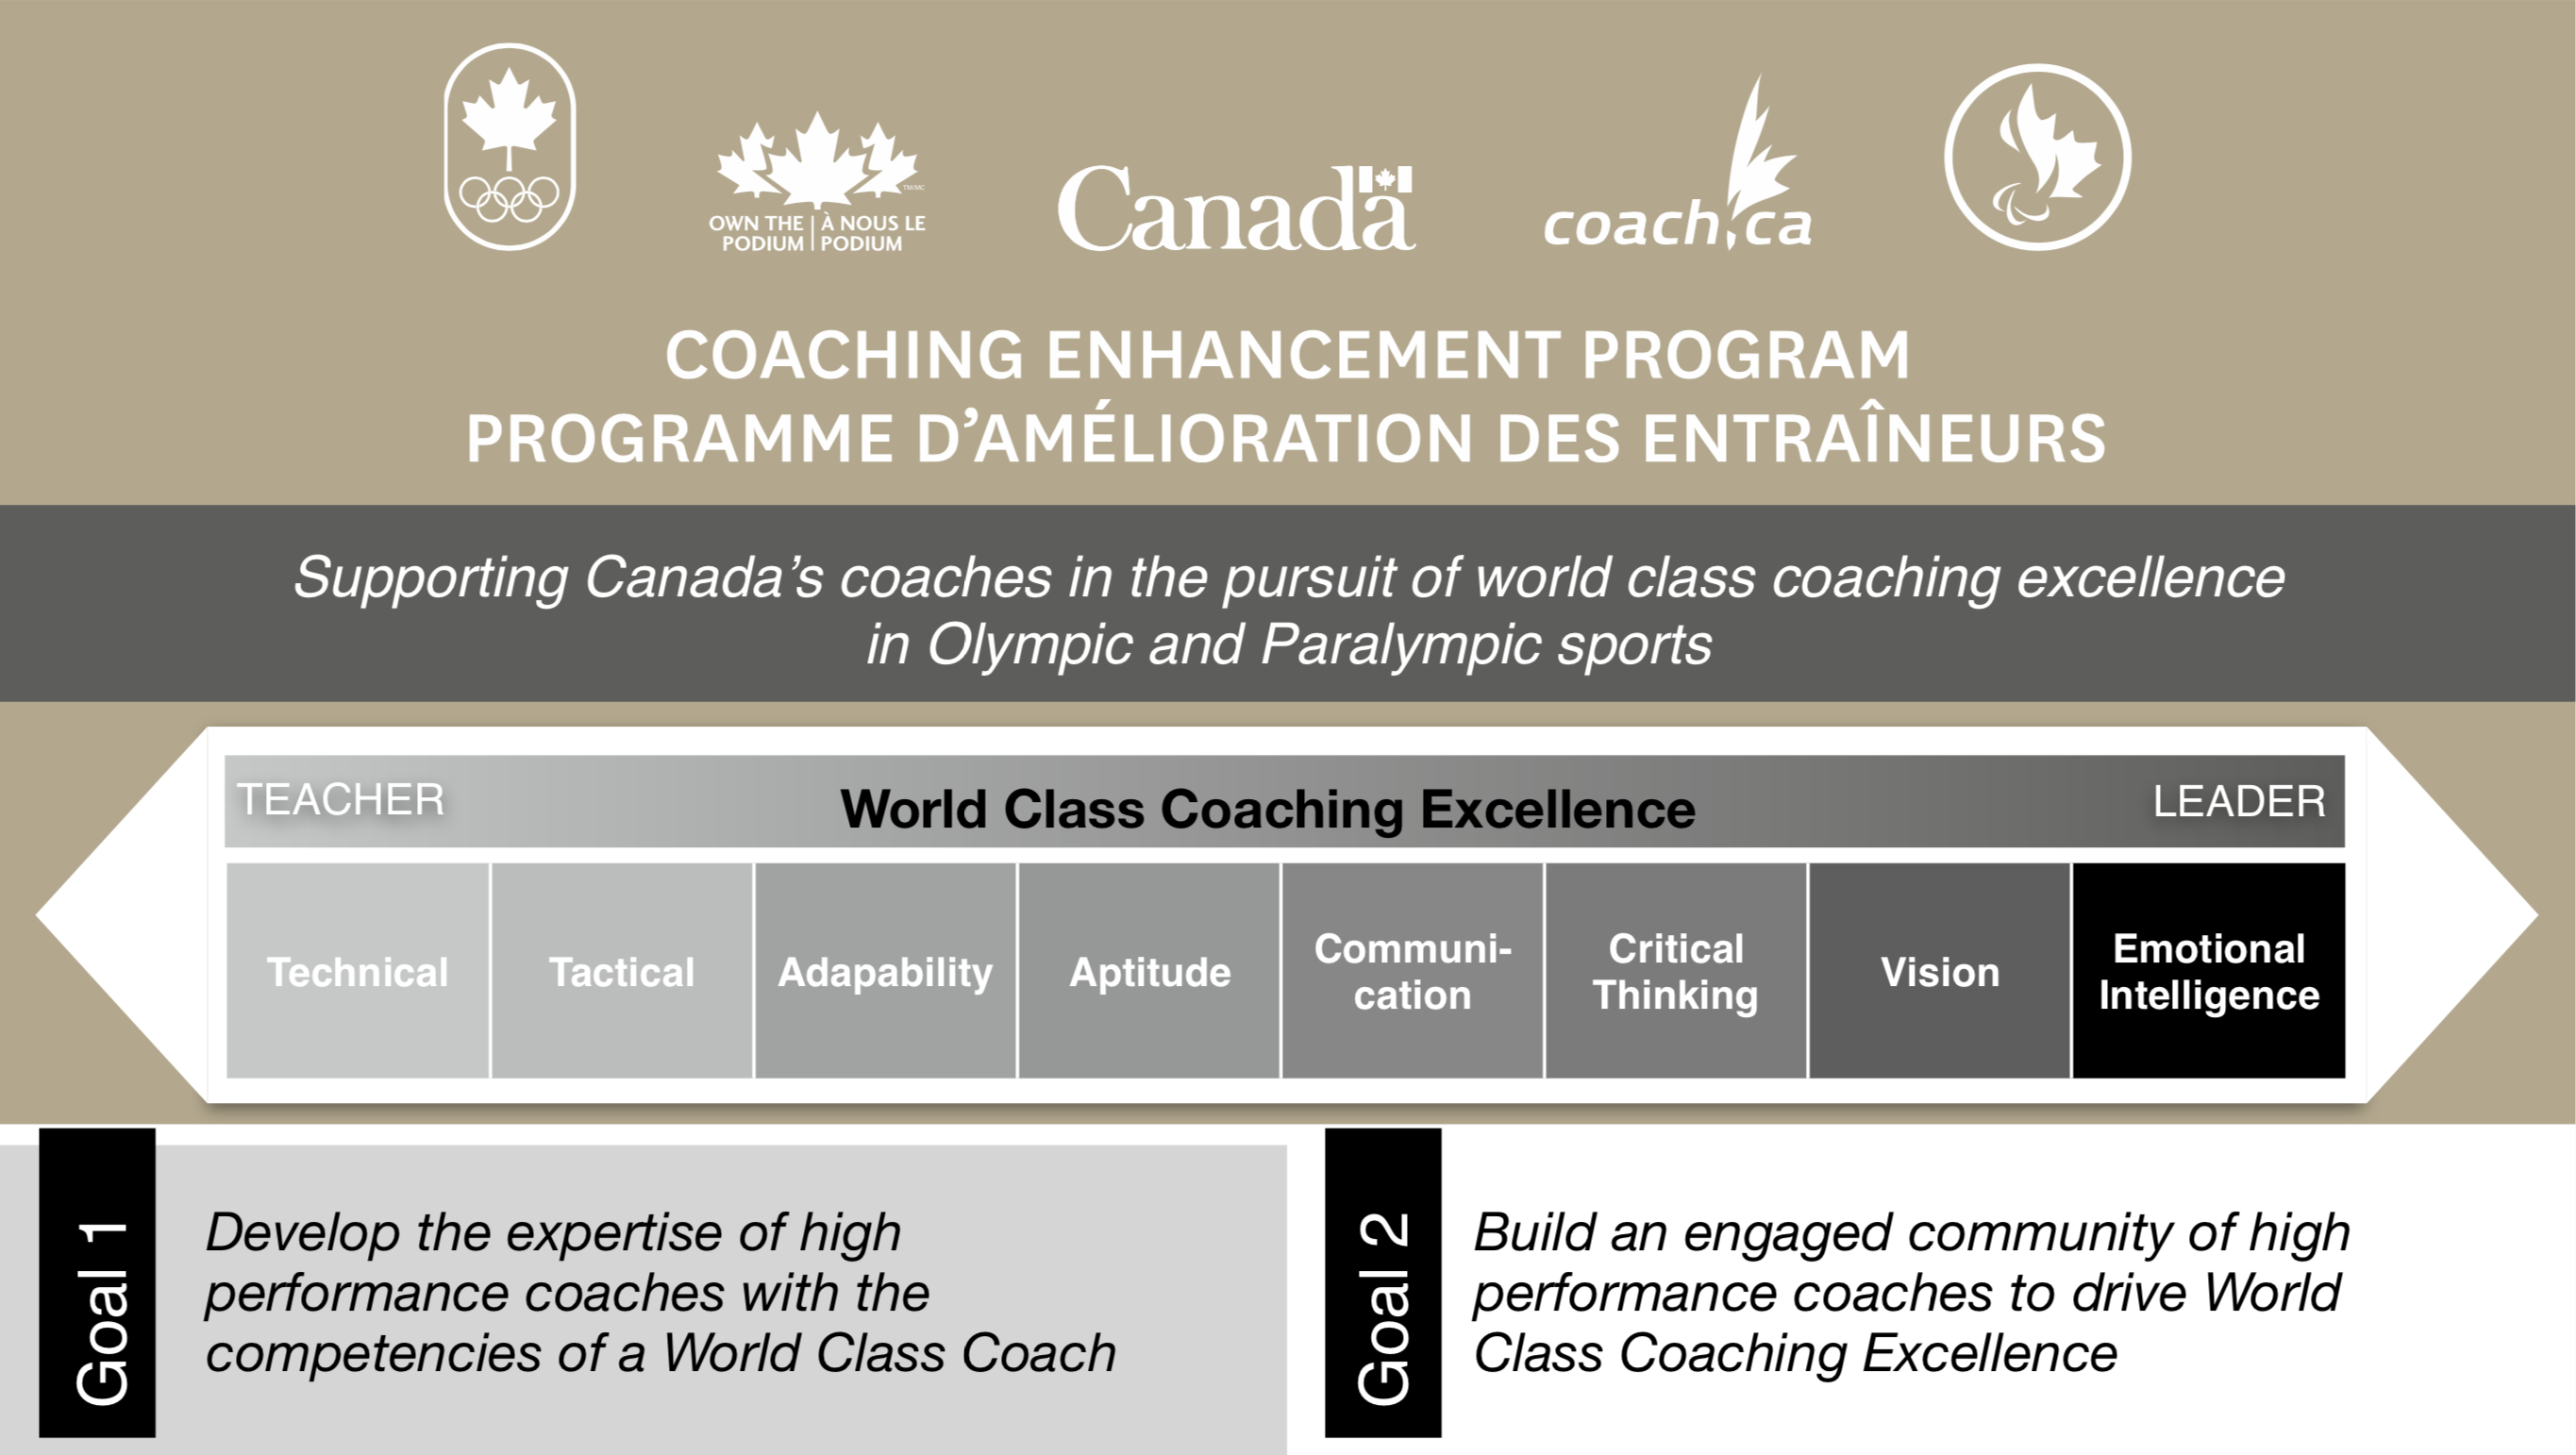 Coaching-Enhancement-Program-Overview-1Pager-Header_EN.png